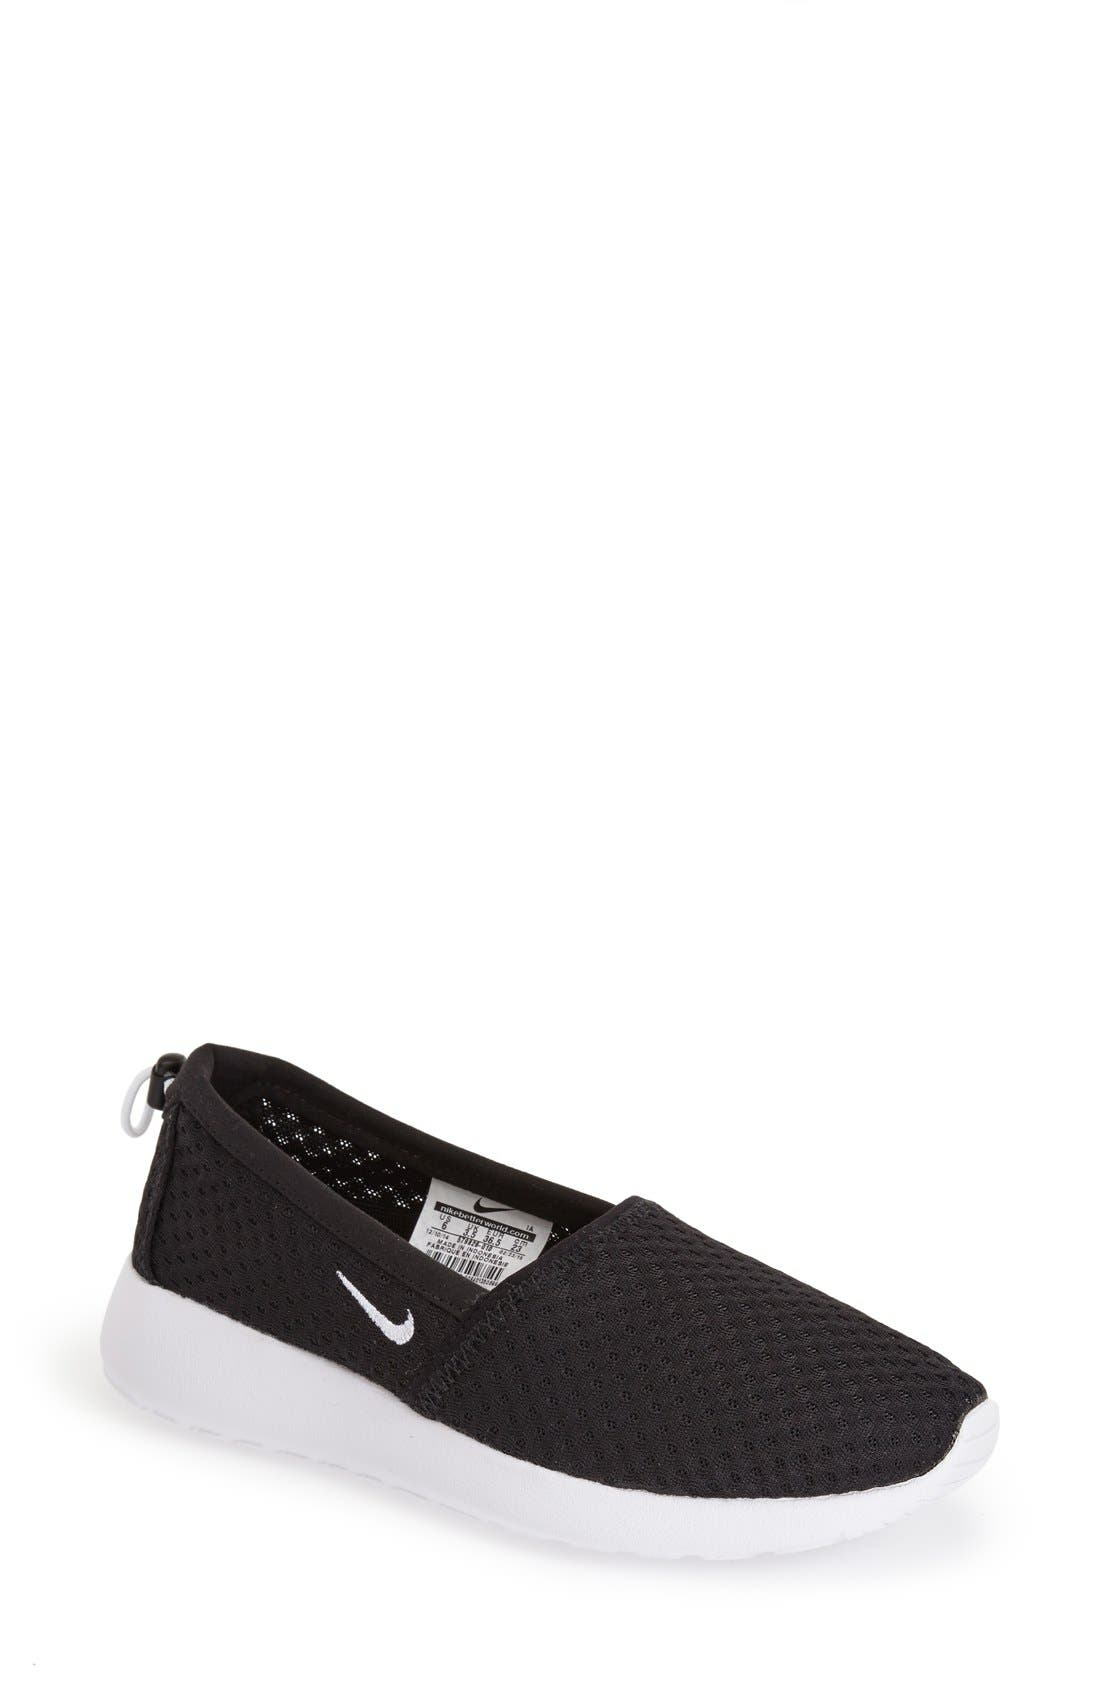 nike roshe run slip on women's